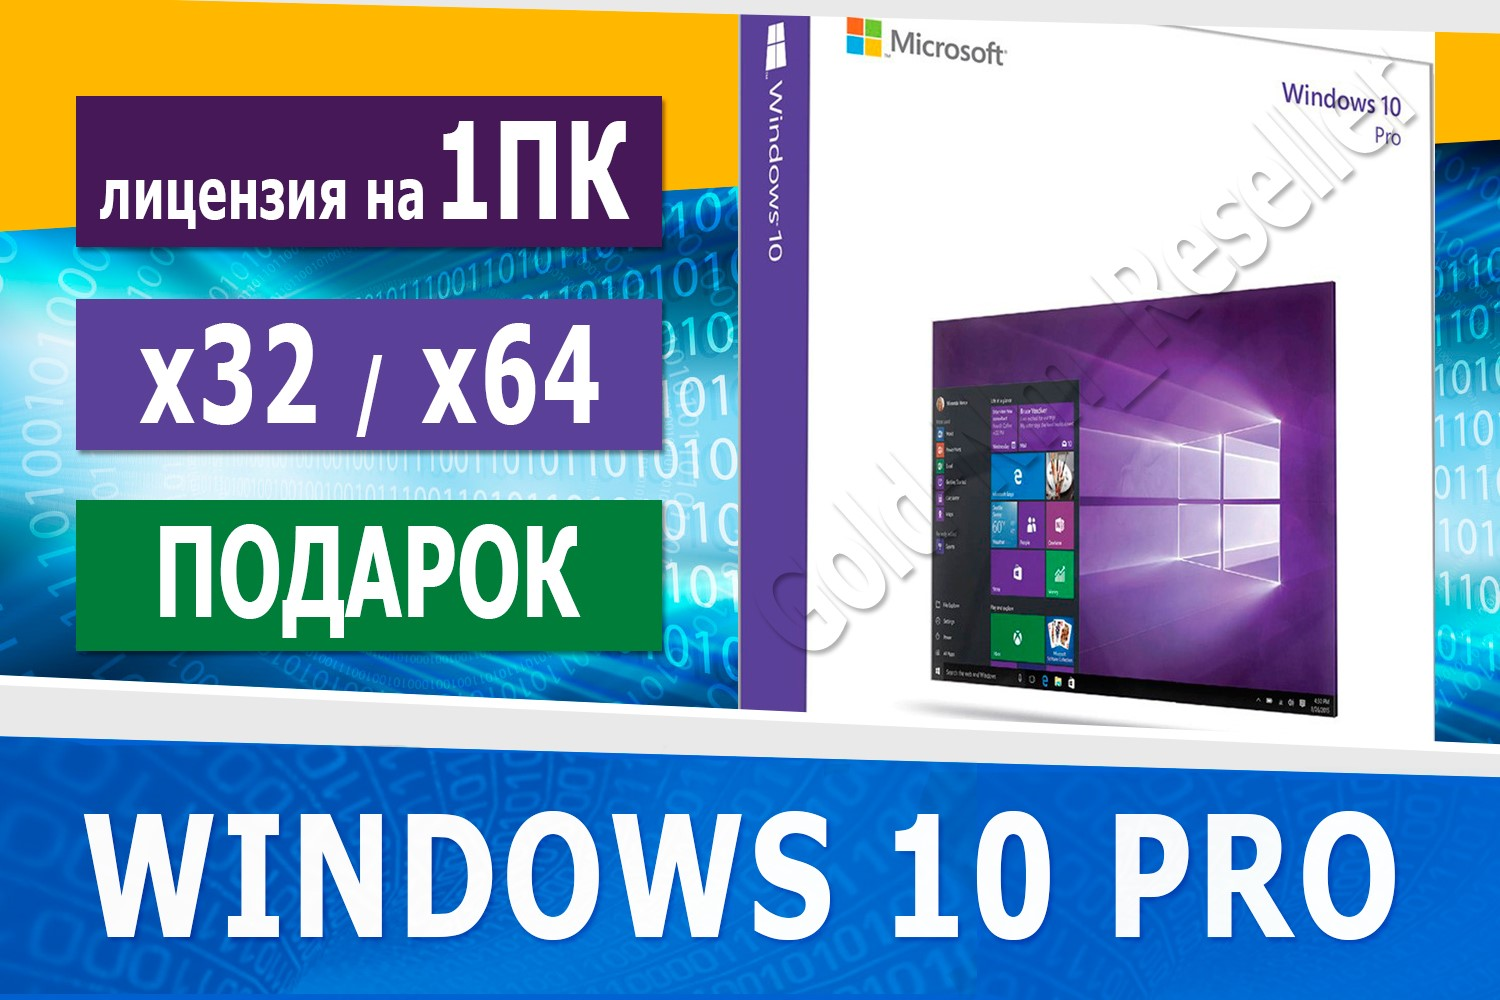 🔑 WINDOWS 10 Professional ГАРАНТИЯ 🎁